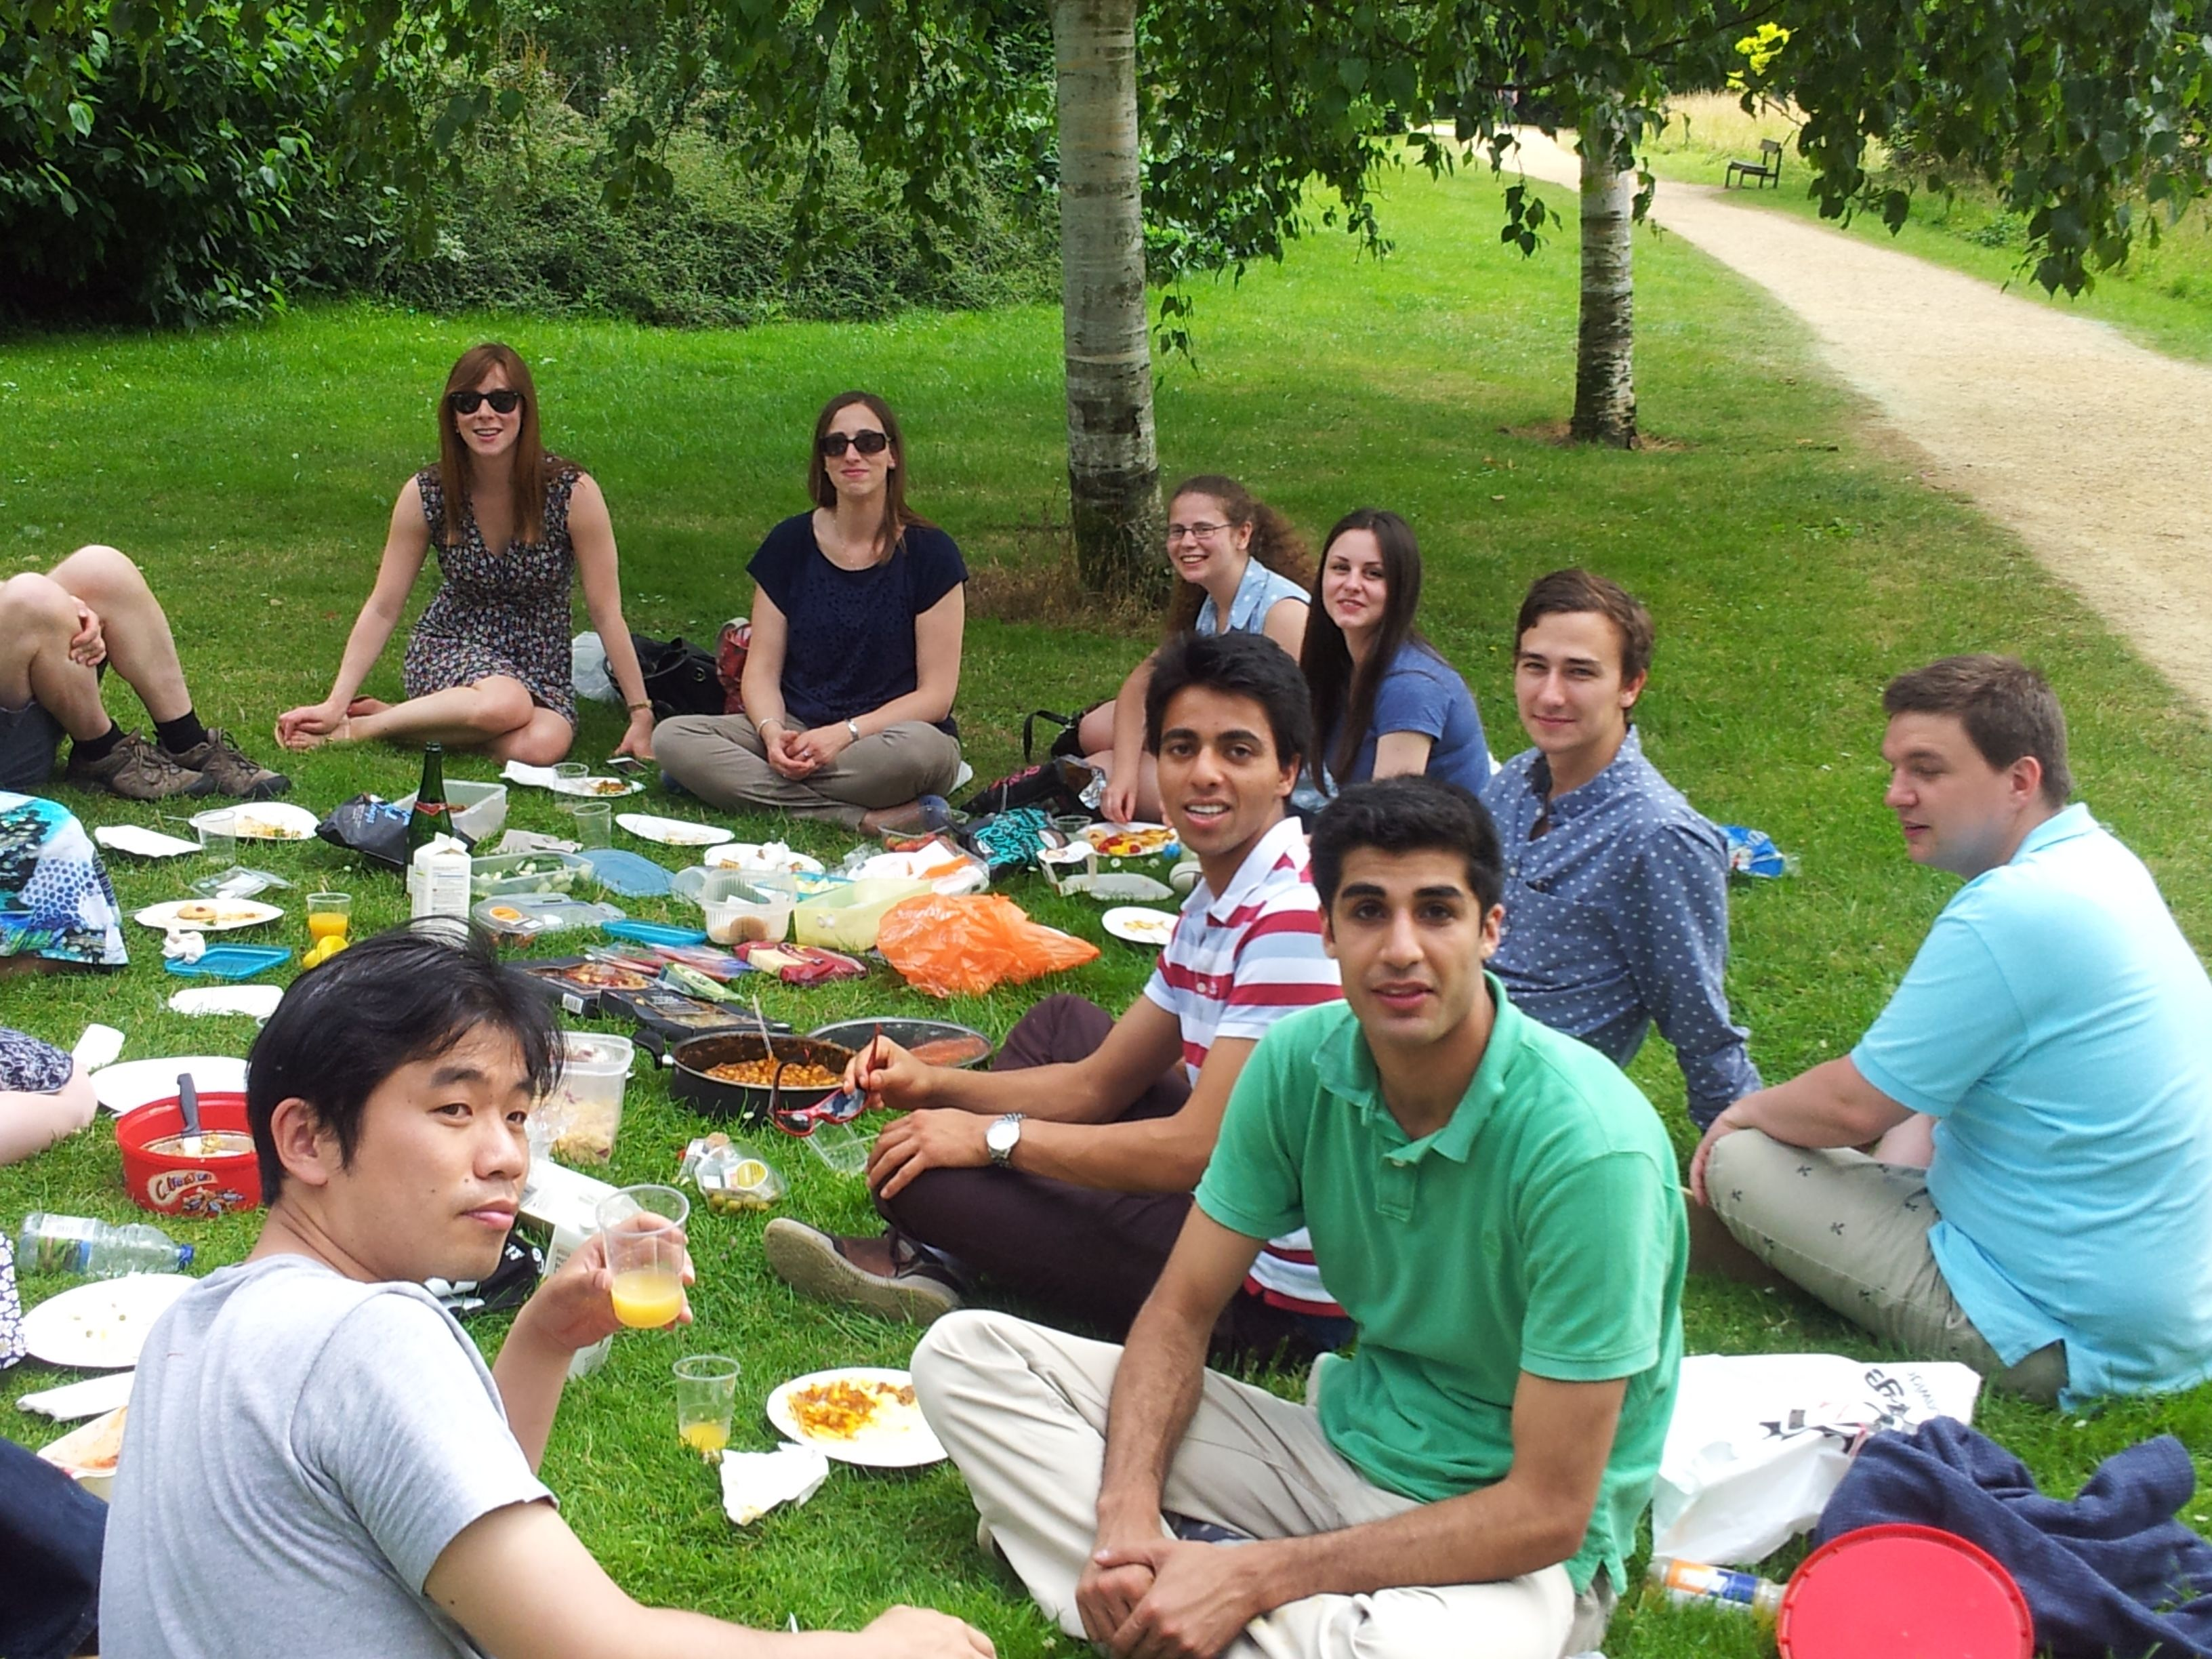 Science, punting and picnic in the parks